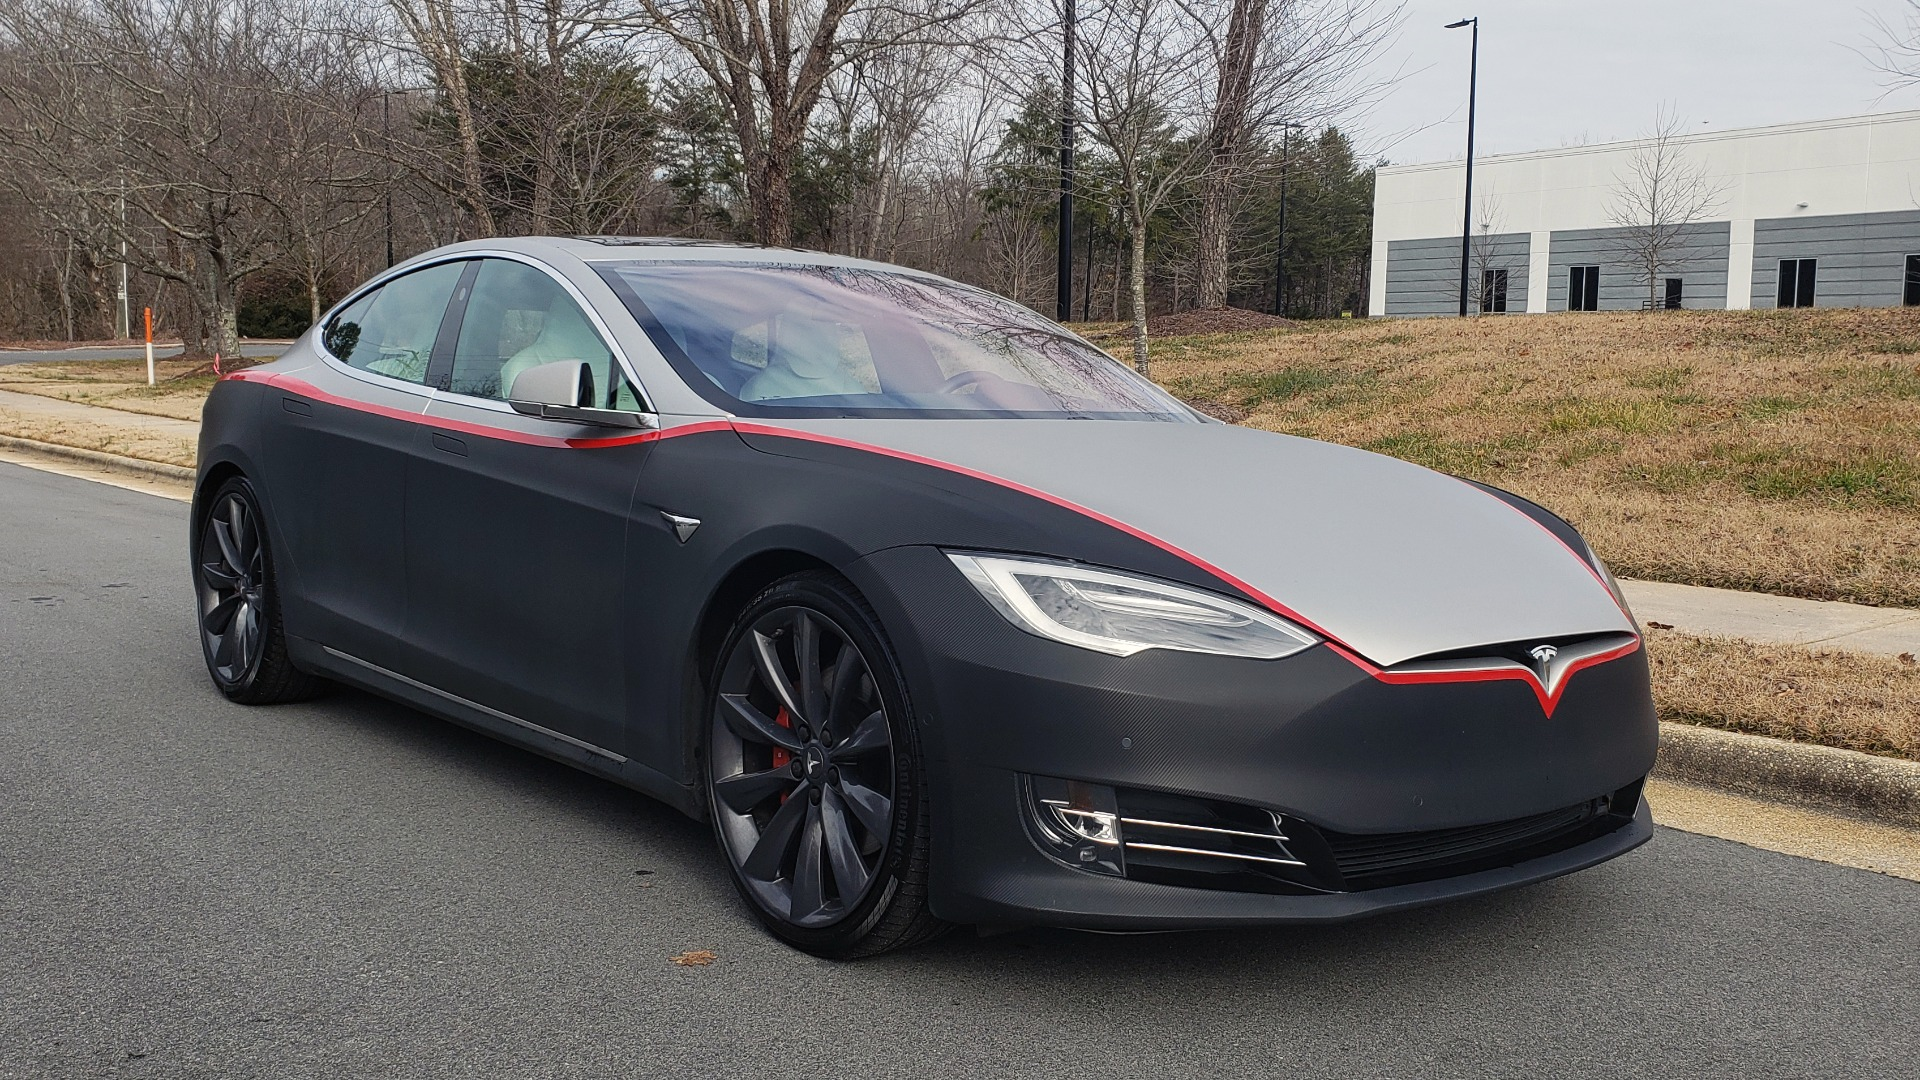 Used 2017 Tesla MODEL S P100D LUDICROUS PERF / PREM / TECH / AUTO PILOT for sale Sold at Formula Imports in Charlotte NC 28227 7